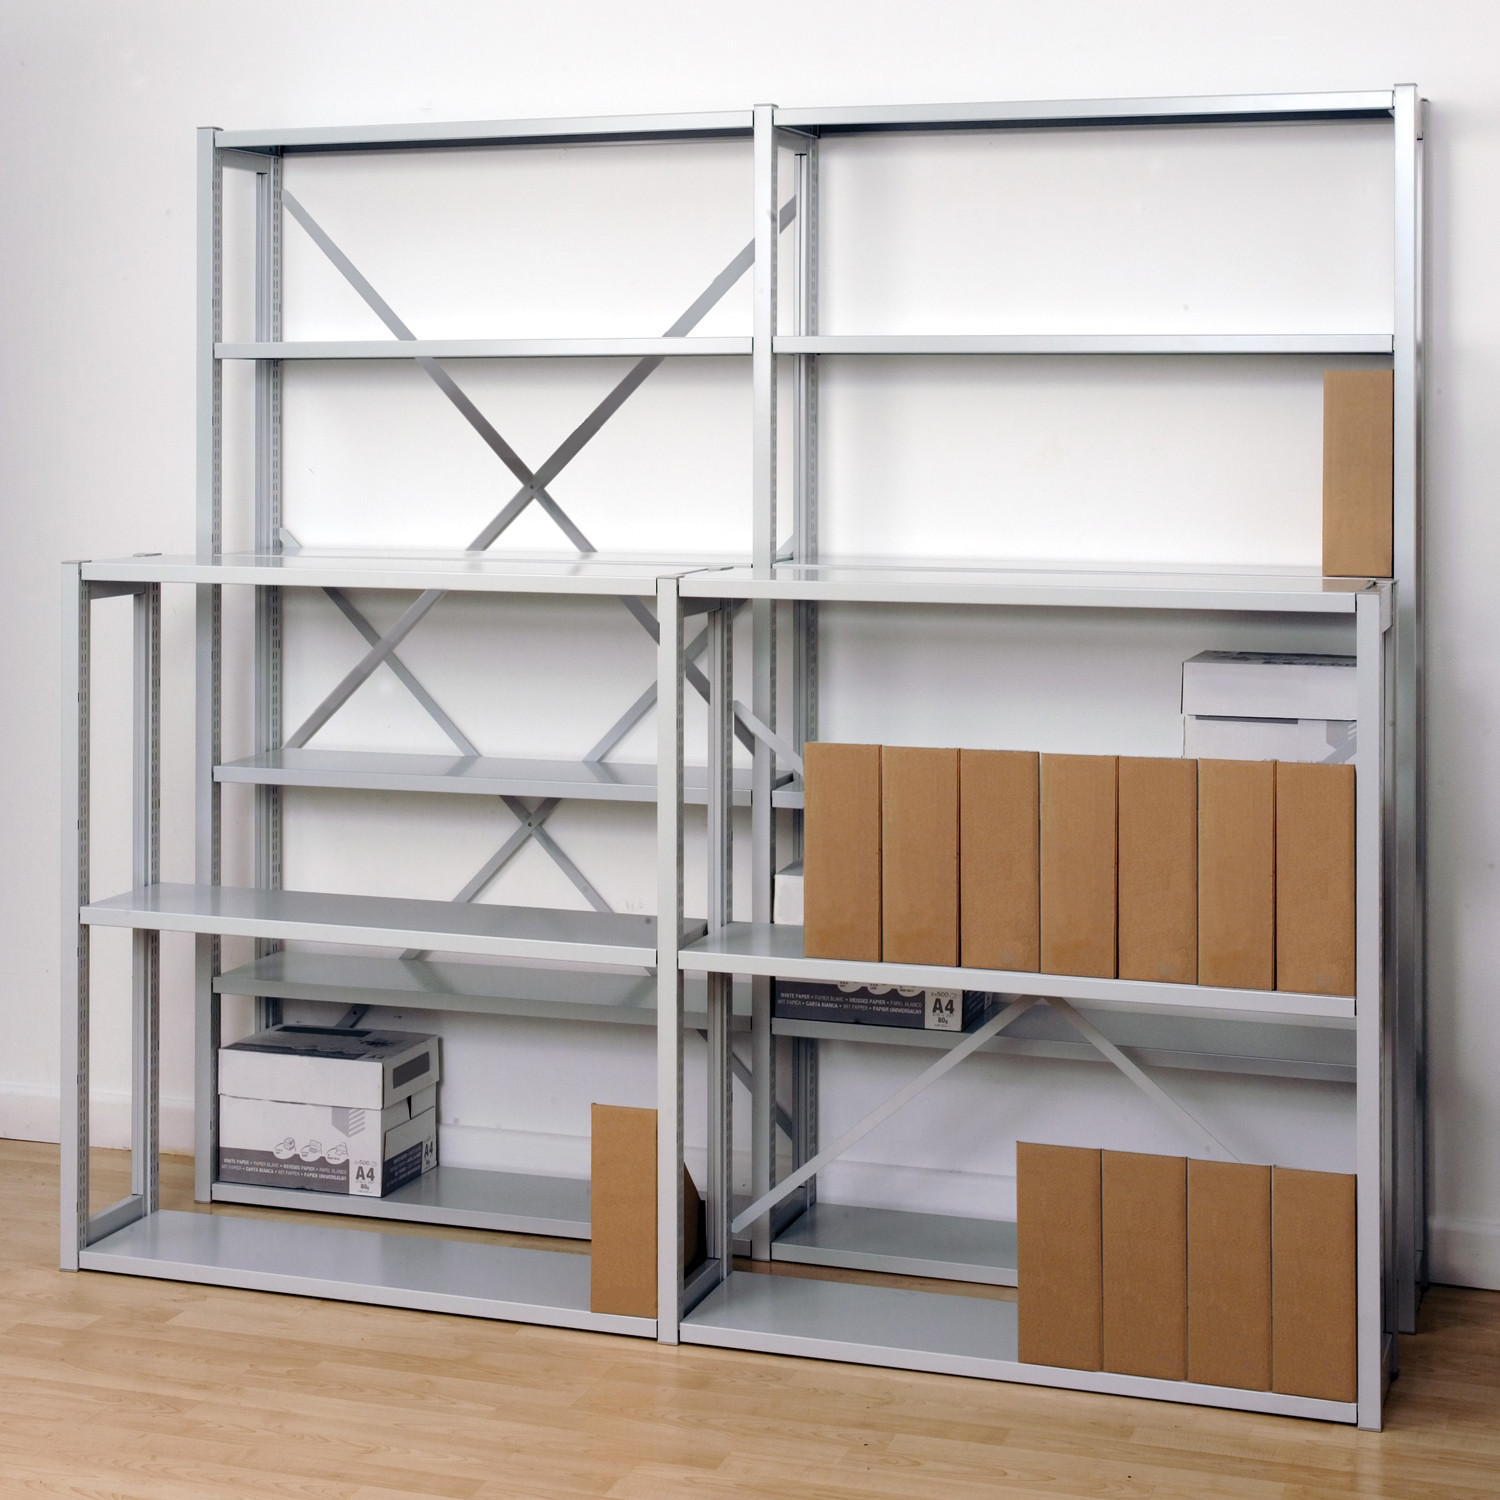 Economy Shelving from Bisley